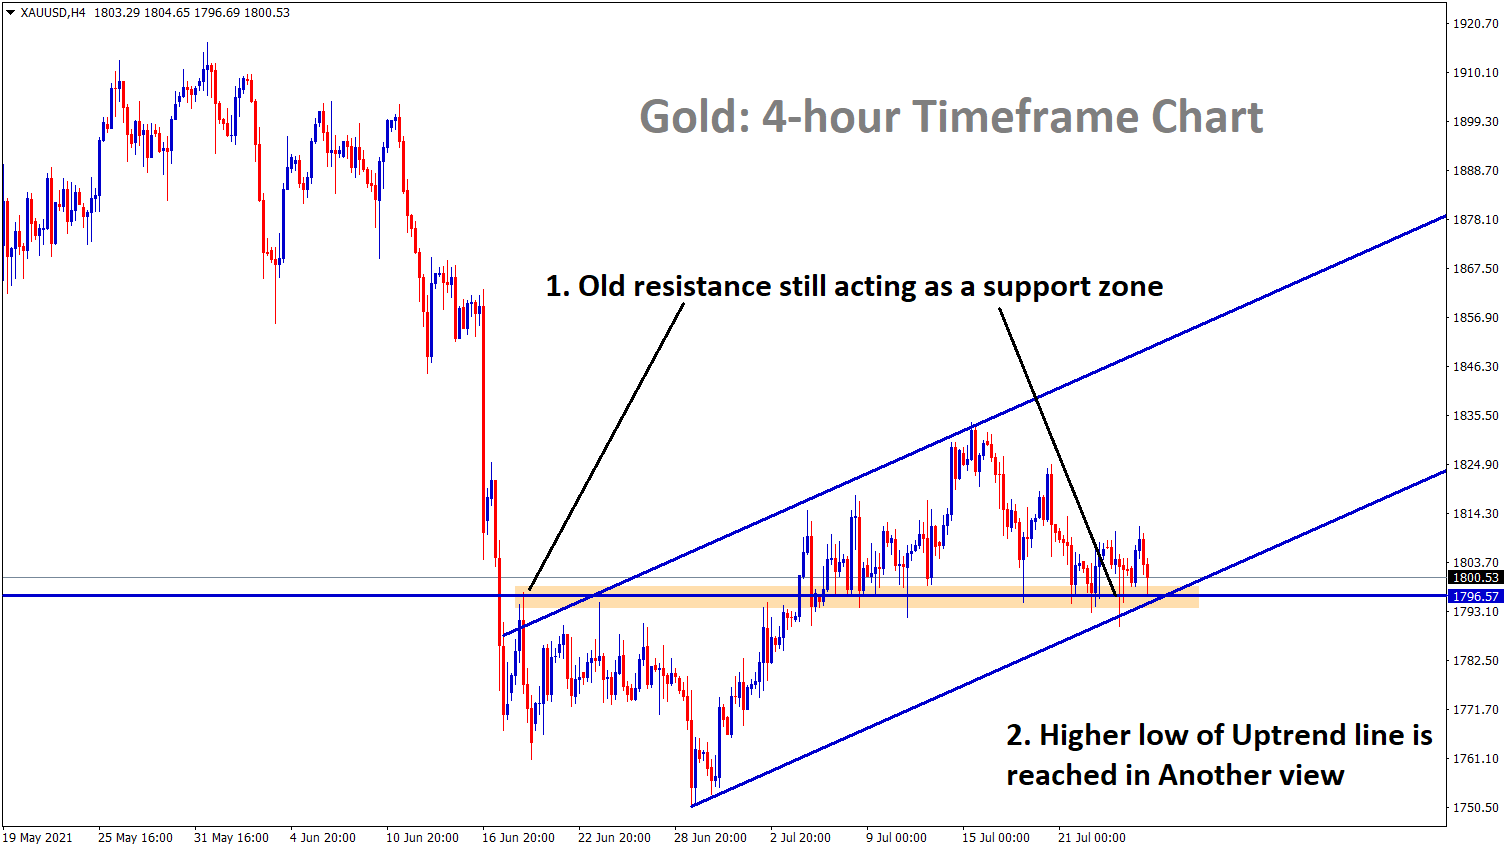 Gold is still moving between the range zones where resistance turned into support and the higher low of uptrend line is reached in another view.